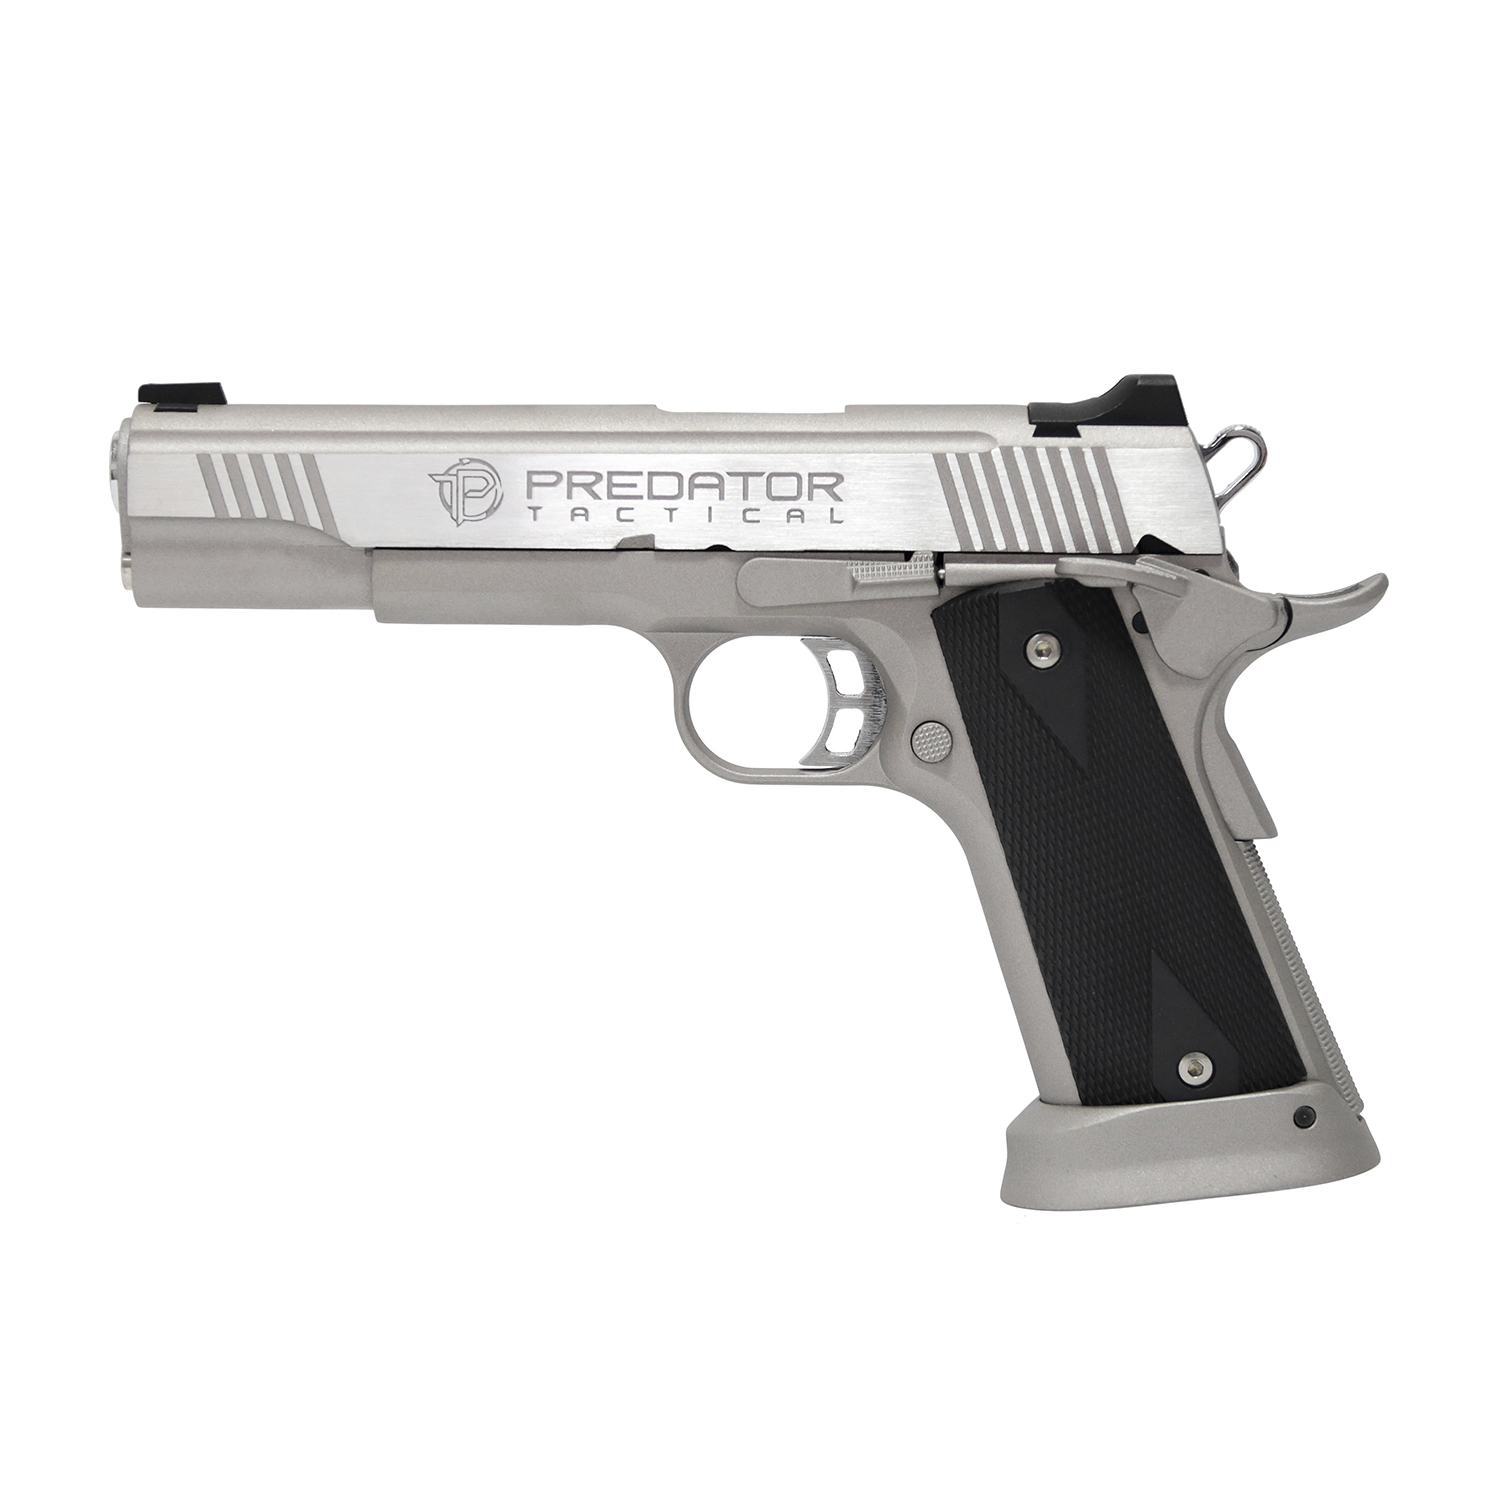 King Arms Predator Iron Shrike Full Metal GBB Pistol - Silver